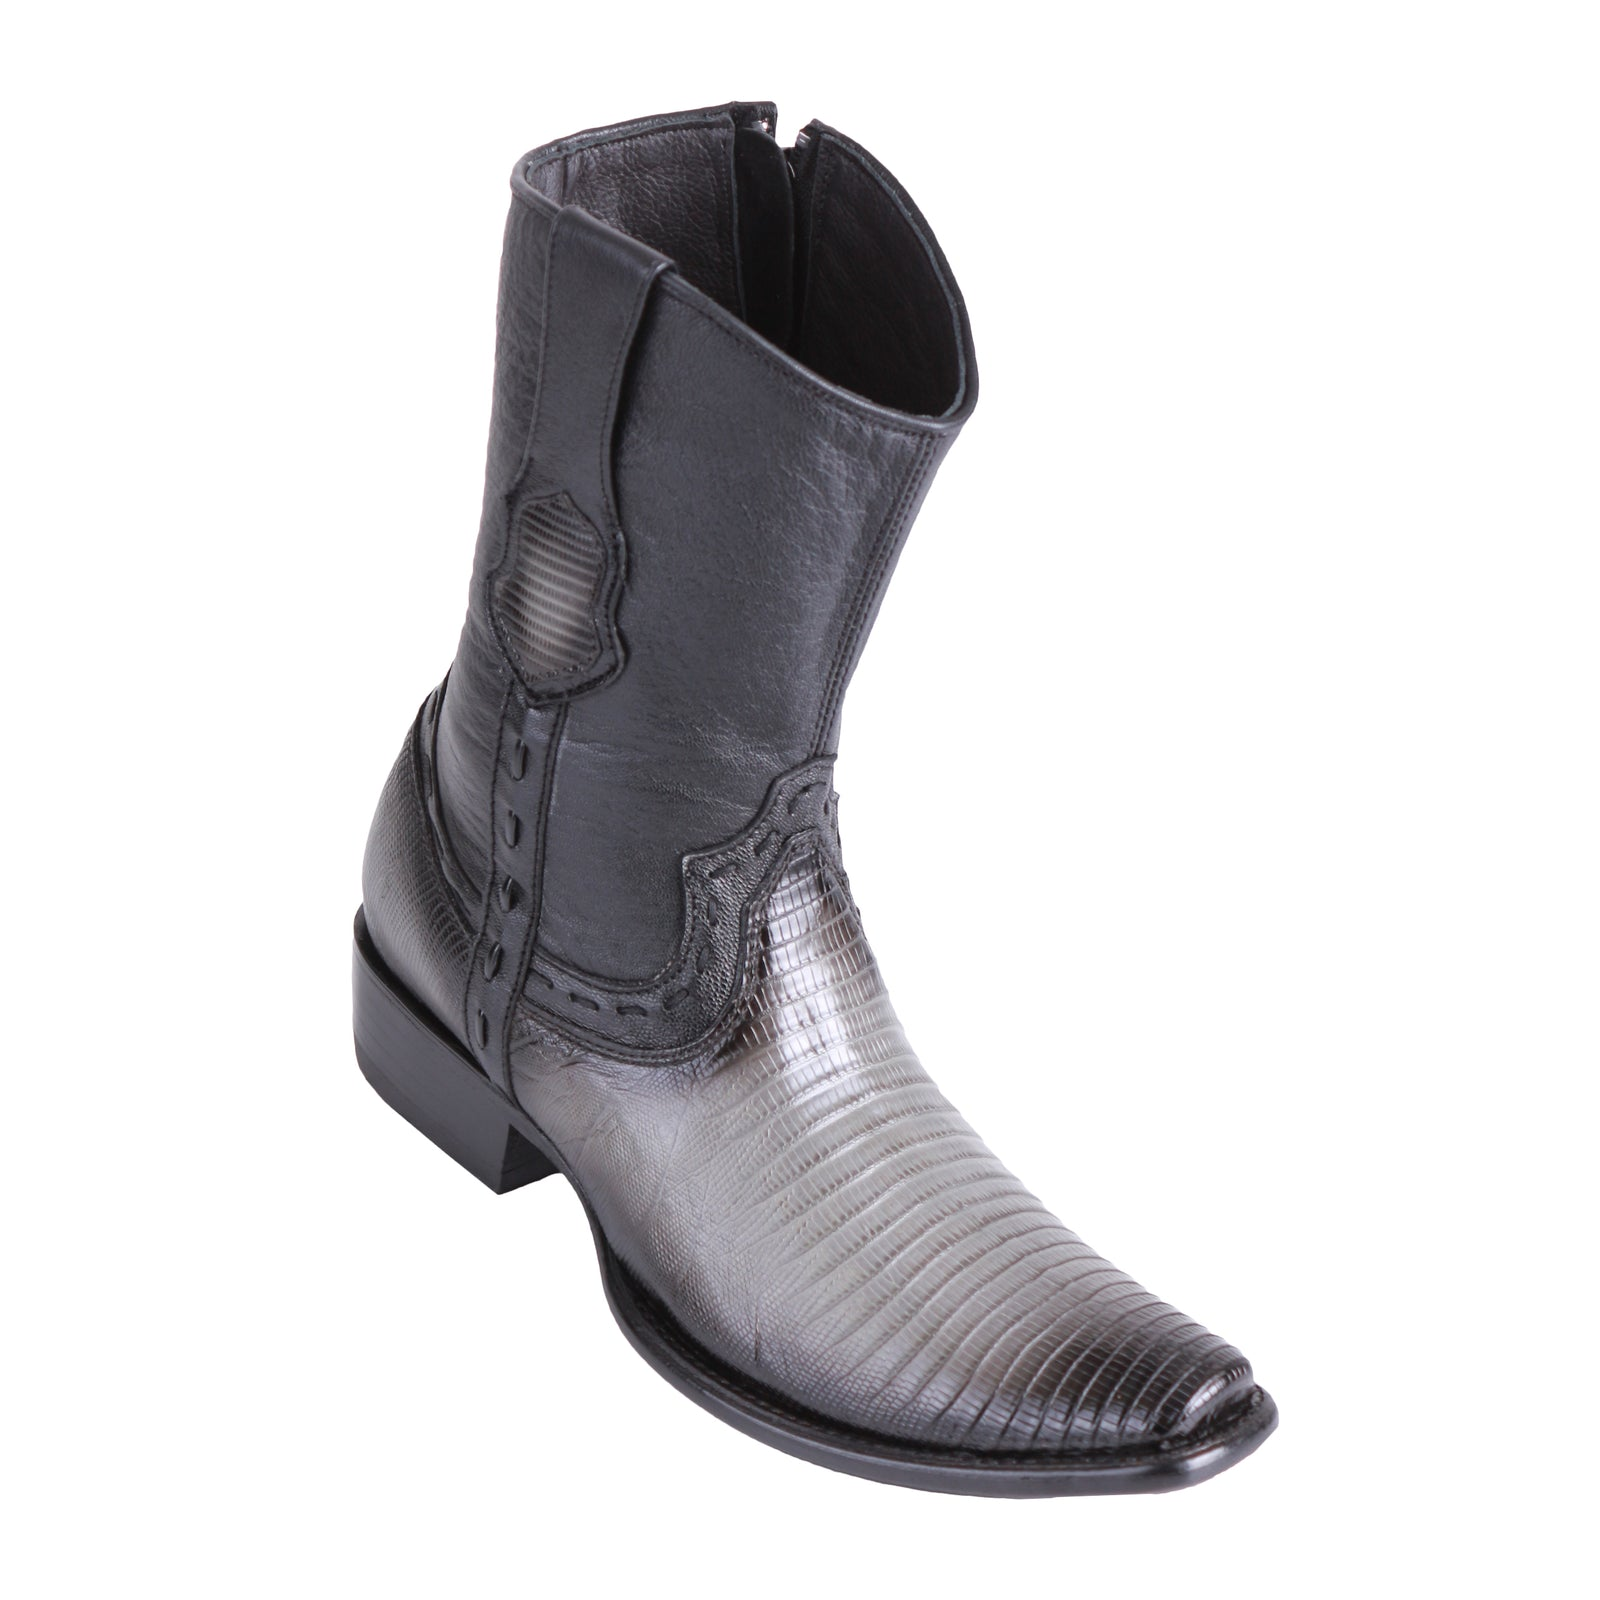 King Exotic Men's Lizard Teju Boots Faded Grey - H79B Dubai Toe